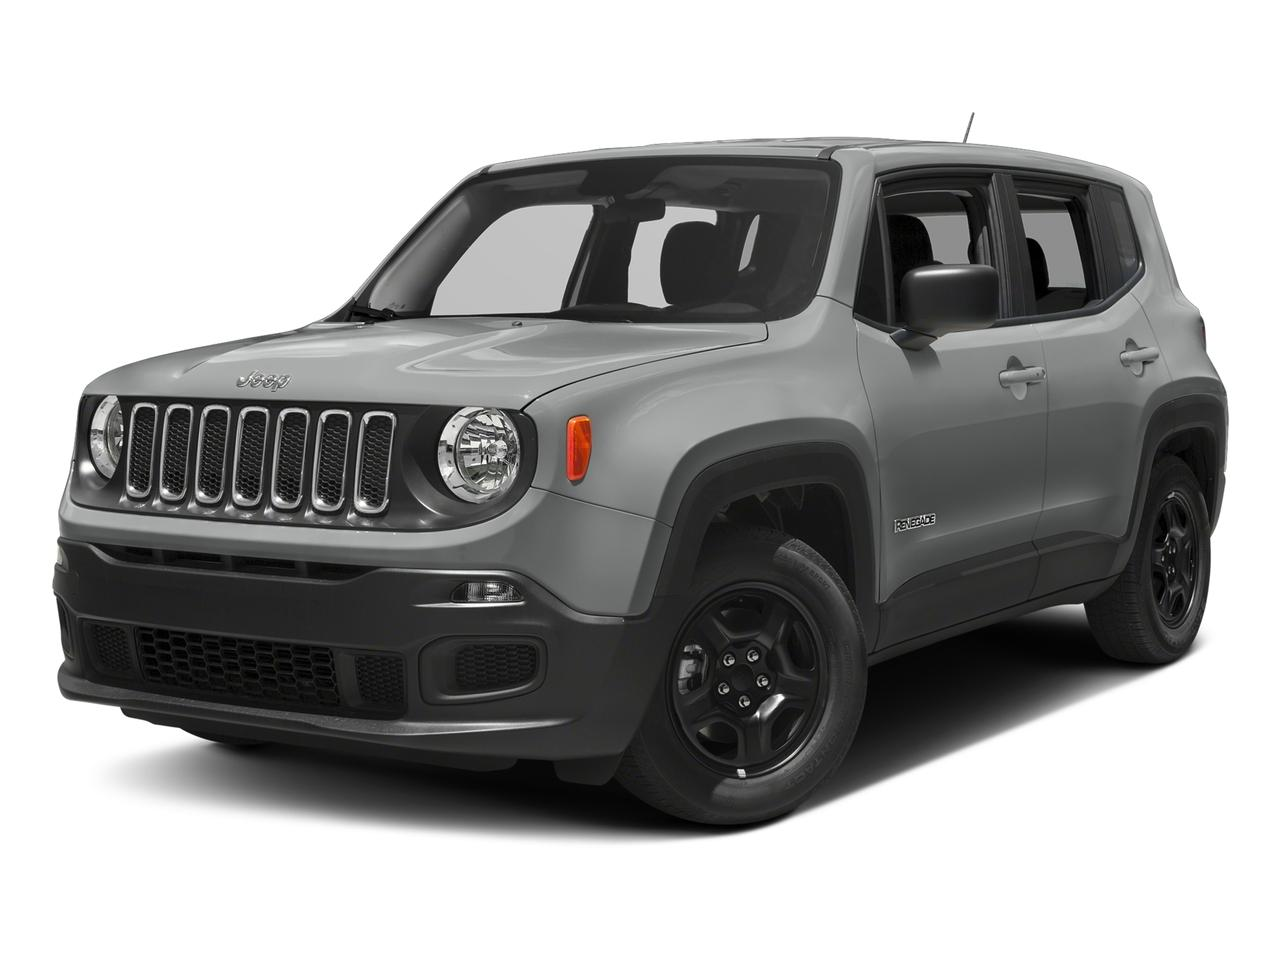 2017 Jeep Renegade Vehicle Photo in Safford, AZ 85546